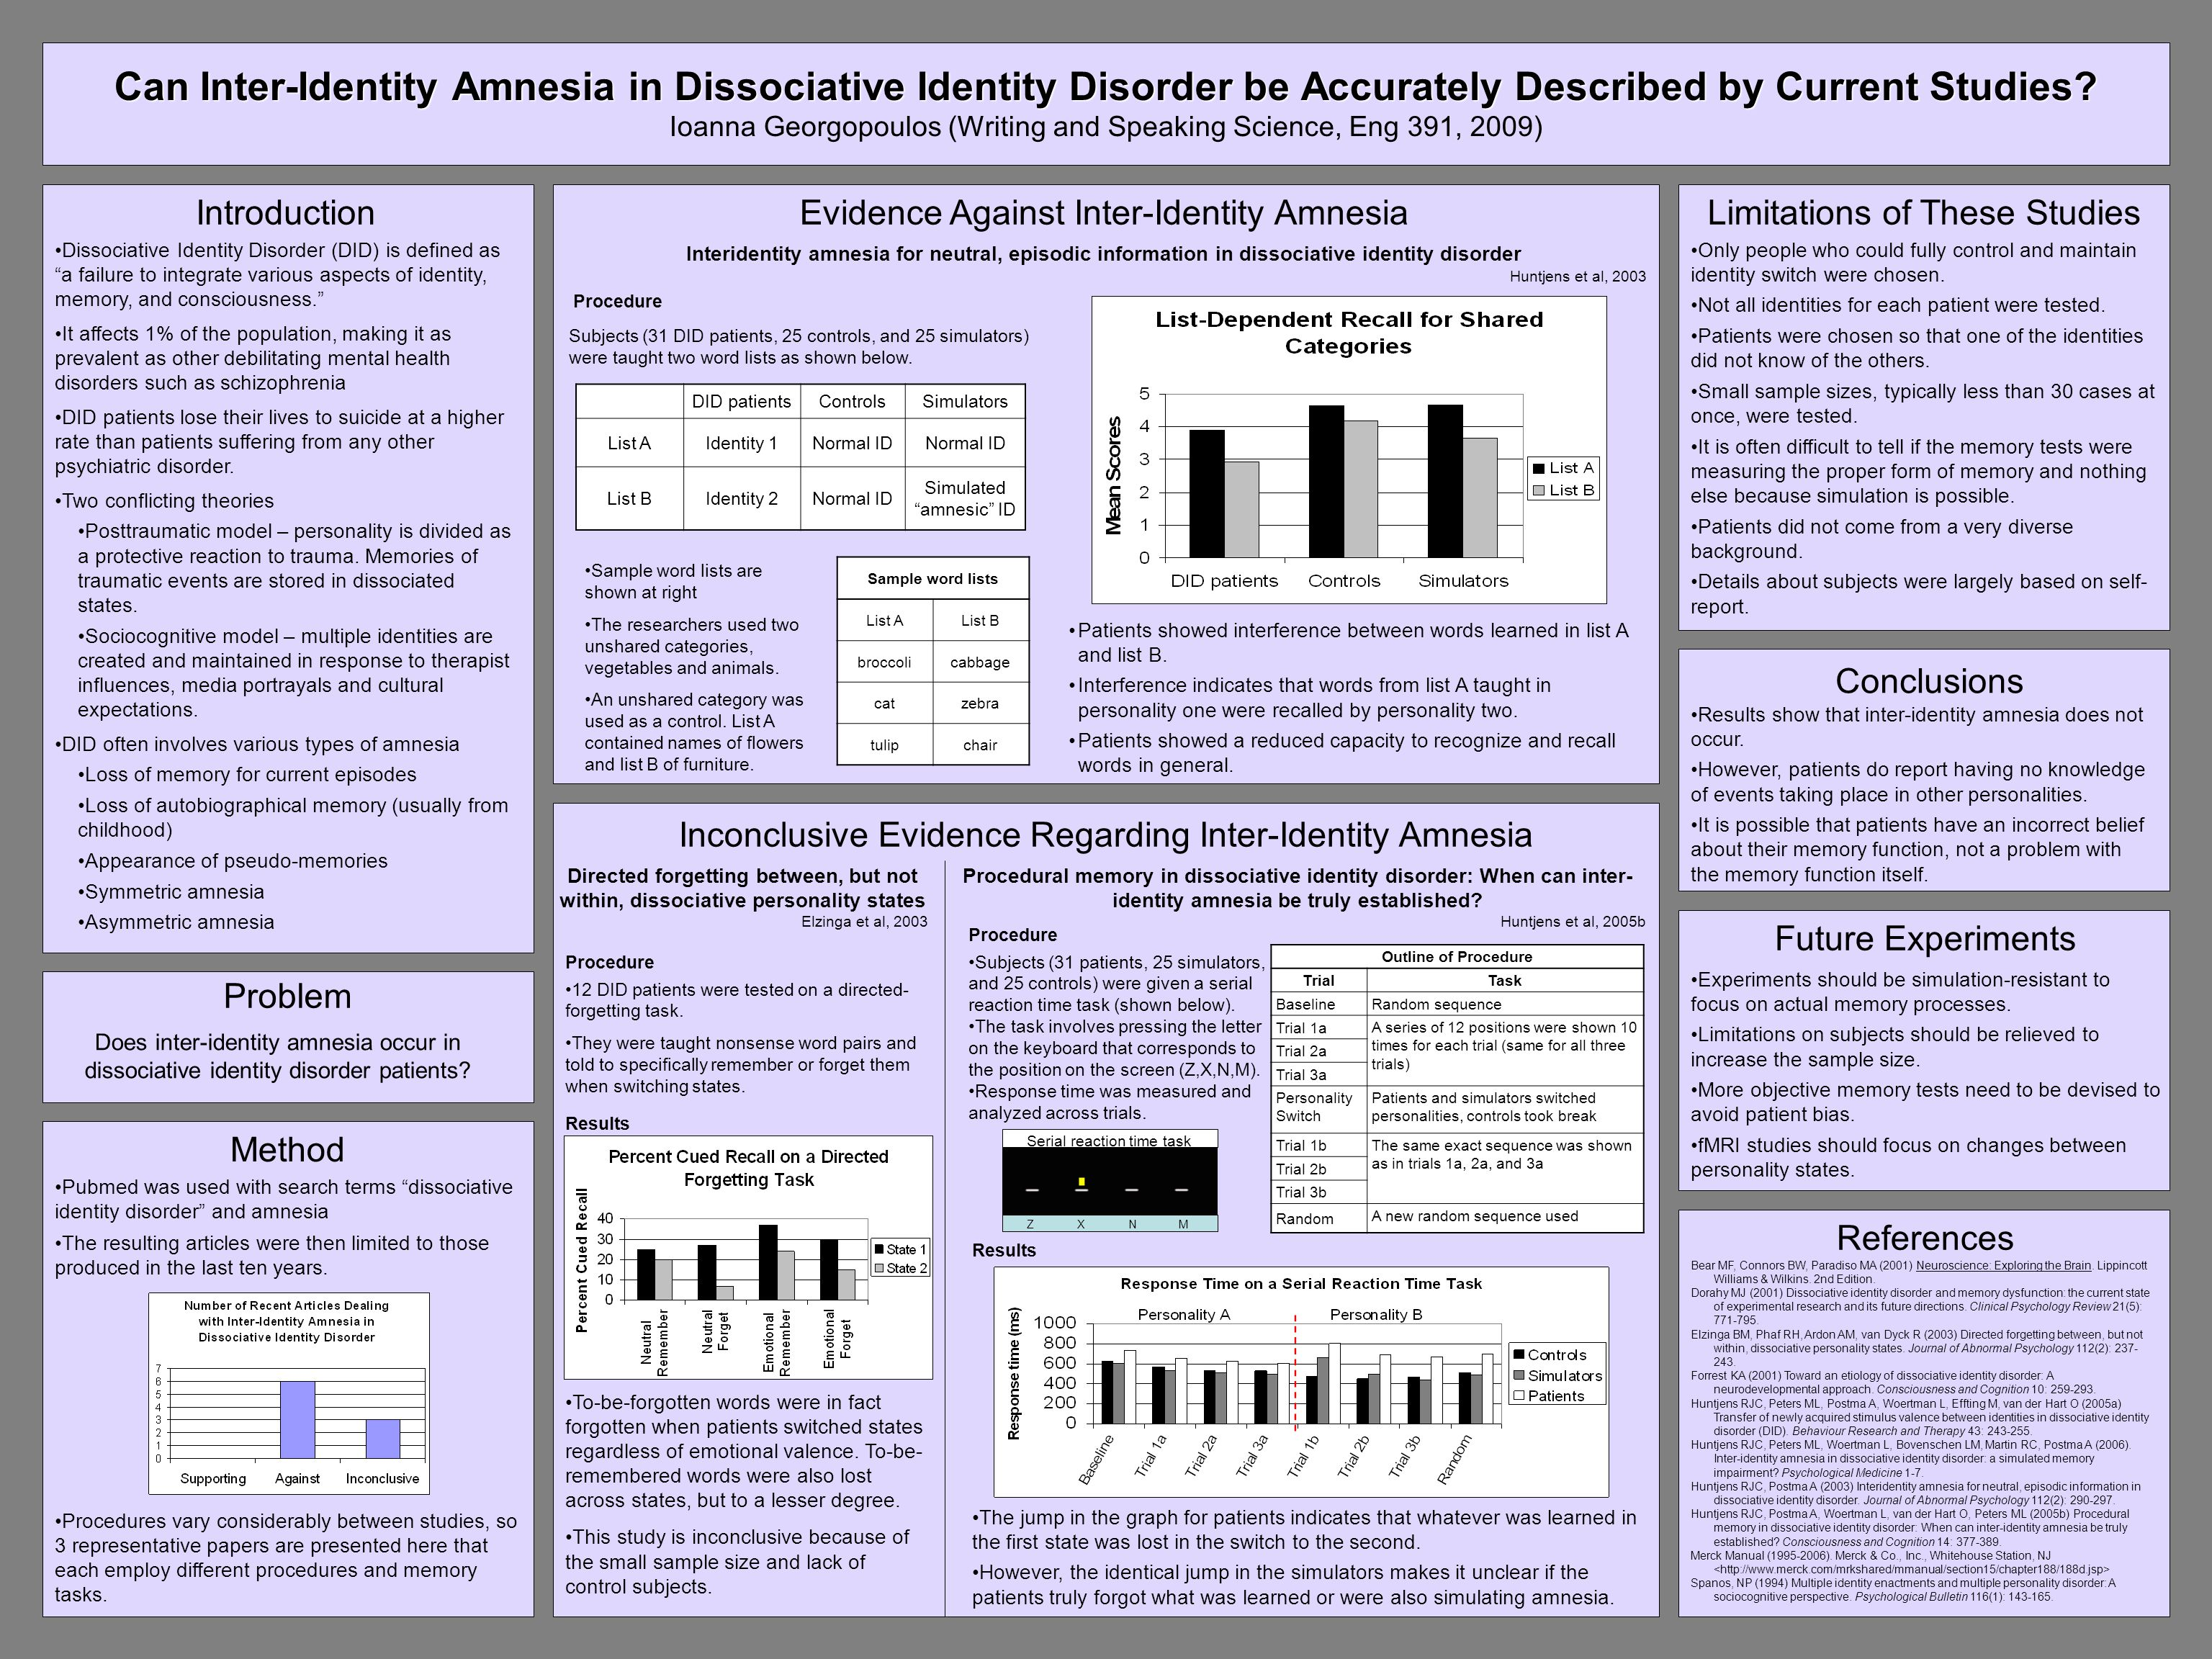 Can Inter-Identity Amnesia in Dissociative Identity Disorder be Accurately Described by Current Studies.